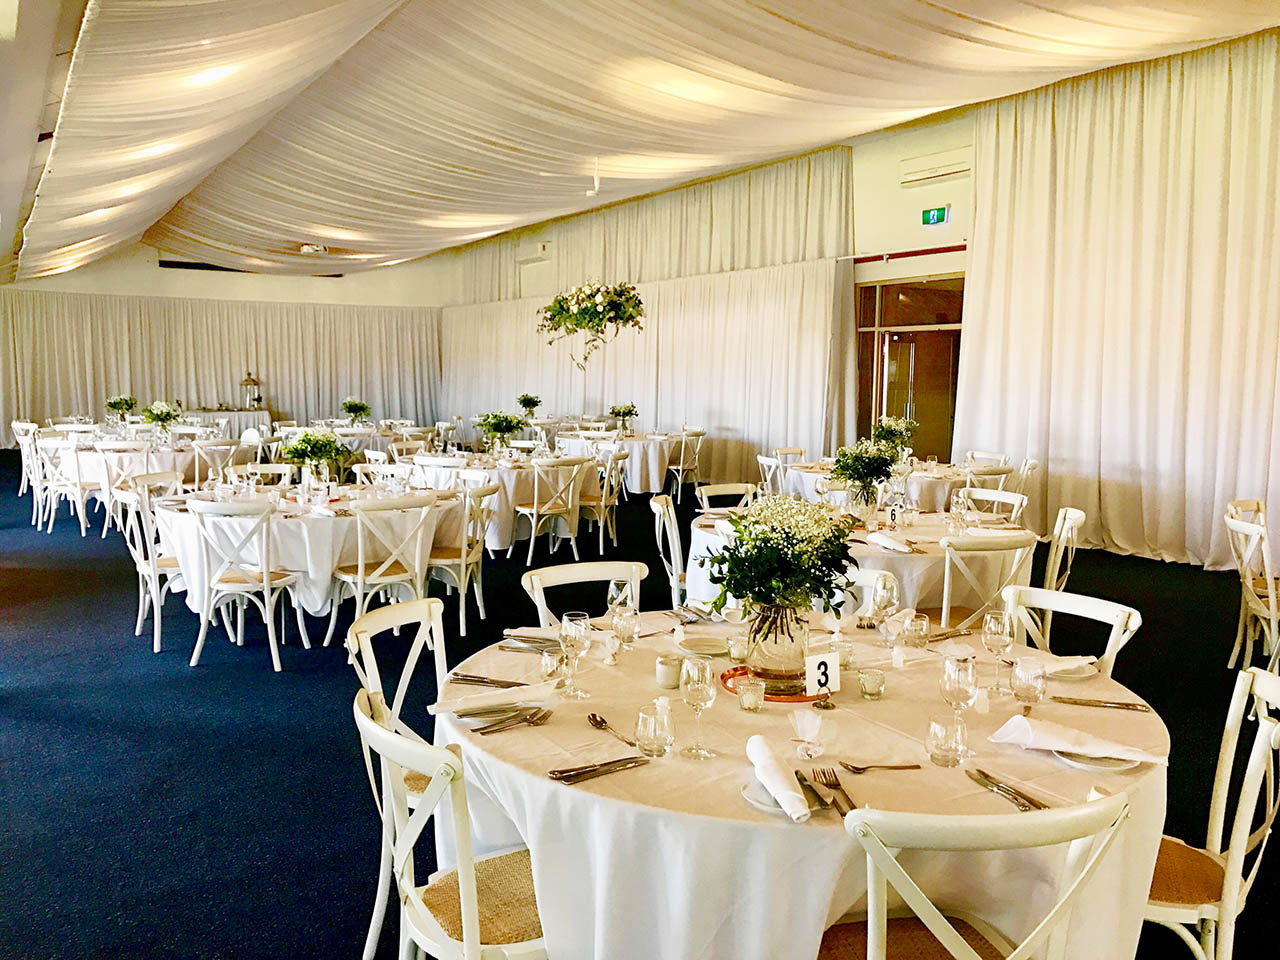 Beautiful wedding dining room setting with white tables and curtains adorning the ceiling, bouquets at the centre of each of the 10 round tables